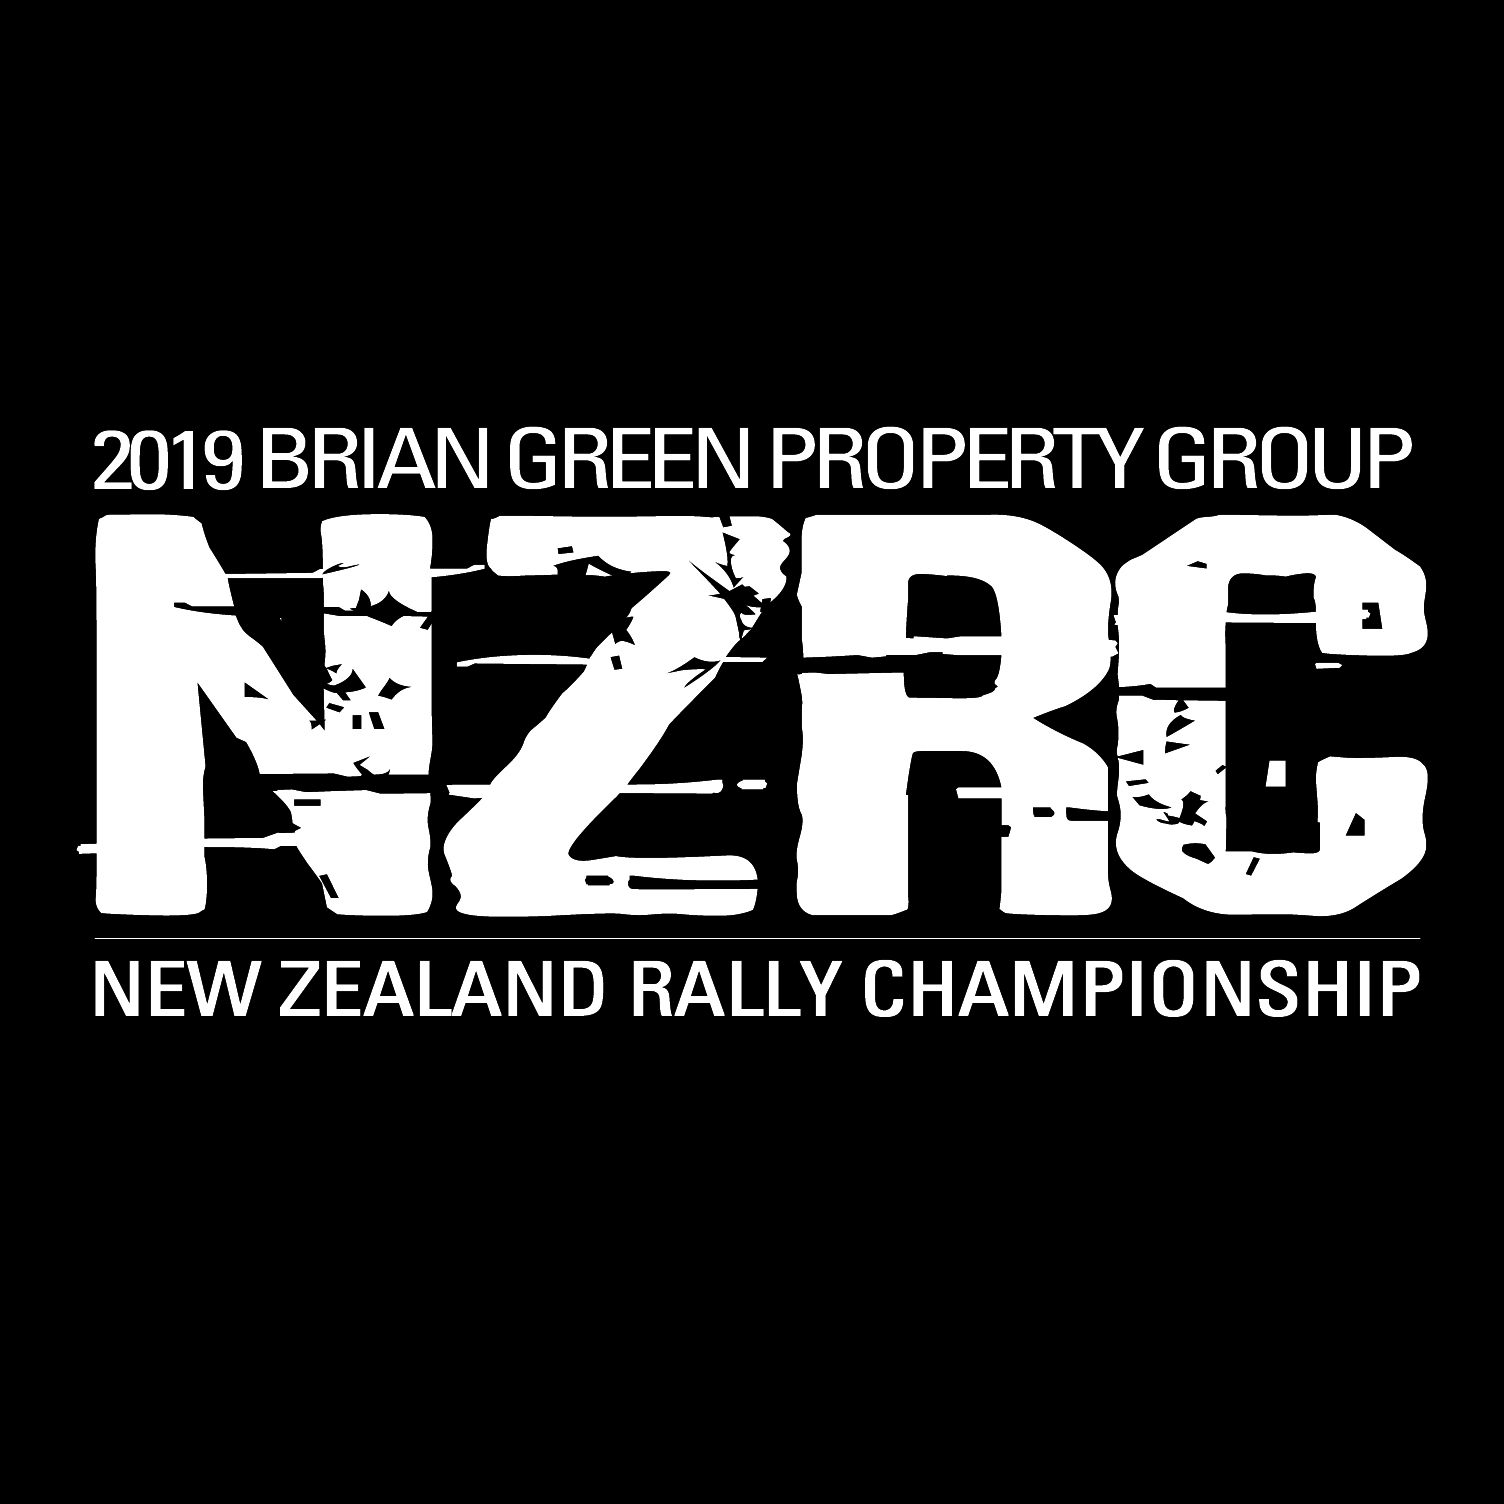 Our Past Champions | :: Brian Green Property Group New Zealand Rally Championship ::